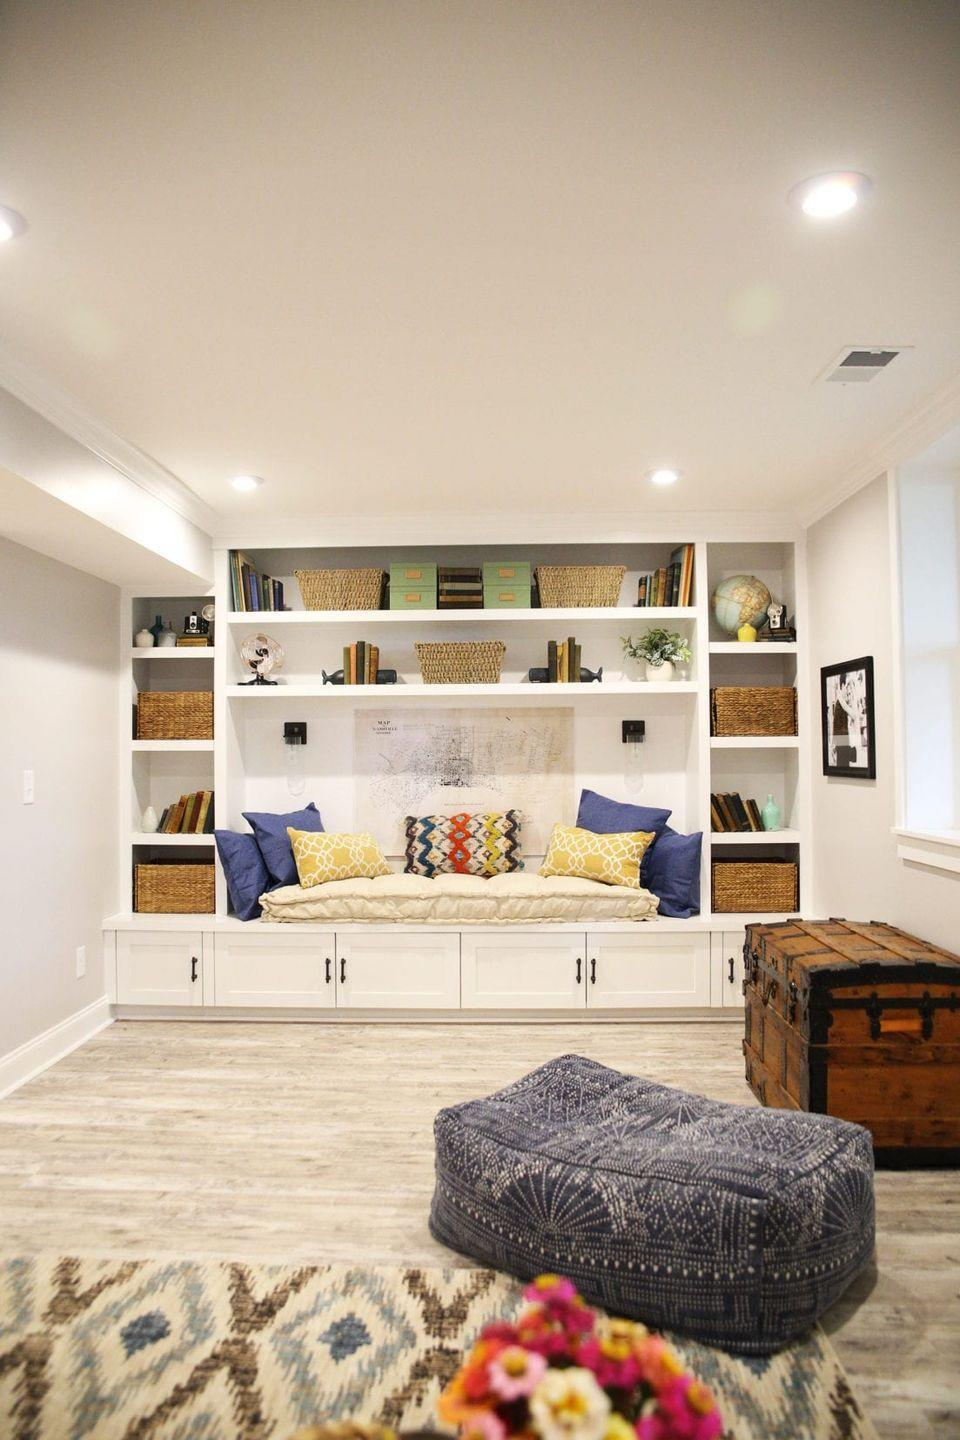 "<p>Showcase all of your favorite things with a basement featuring multiple built-in shelves. This space incorporates football relics, fun photos, vintage glasses, and other collectables for a truly unique look. Add seagrass baskets to the mix to meet all of your storage needs. </p><p><strong>See more at <a href=""https://www.thehandmadehome.net/pole-basement-reveal/"" rel=""nofollow noopener"" target=""_blank"" data-ylk=""slk:The Handmade Home"" class=""link rapid-noclick-resp"">The Handmade Home</a>. </strong></p><p><a class=""link rapid-noclick-resp"" href=""https://go.redirectingat.com?id=74968X1596630&url=https%3A%2F%2Fwww.walmart.com%2Fip%2FBest-Choice-Products-Set-of-4-Multipurpose-Stackable-Seagrass-Storage-Laundry-Organizer-Tote-Baskets-w-Insert-Handles%2F330709048&sref=https%3A%2F%2Fwww.thepioneerwoman.com%2Fhome-lifestyle%2Fdecorating-ideas%2Fg34763691%2Fbasement-ideas%2F"" rel=""nofollow noopener"" target=""_blank"" data-ylk=""slk:SHOP STORAGE BASKETS"">SHOP STORAGE BASKETS</a></p>"